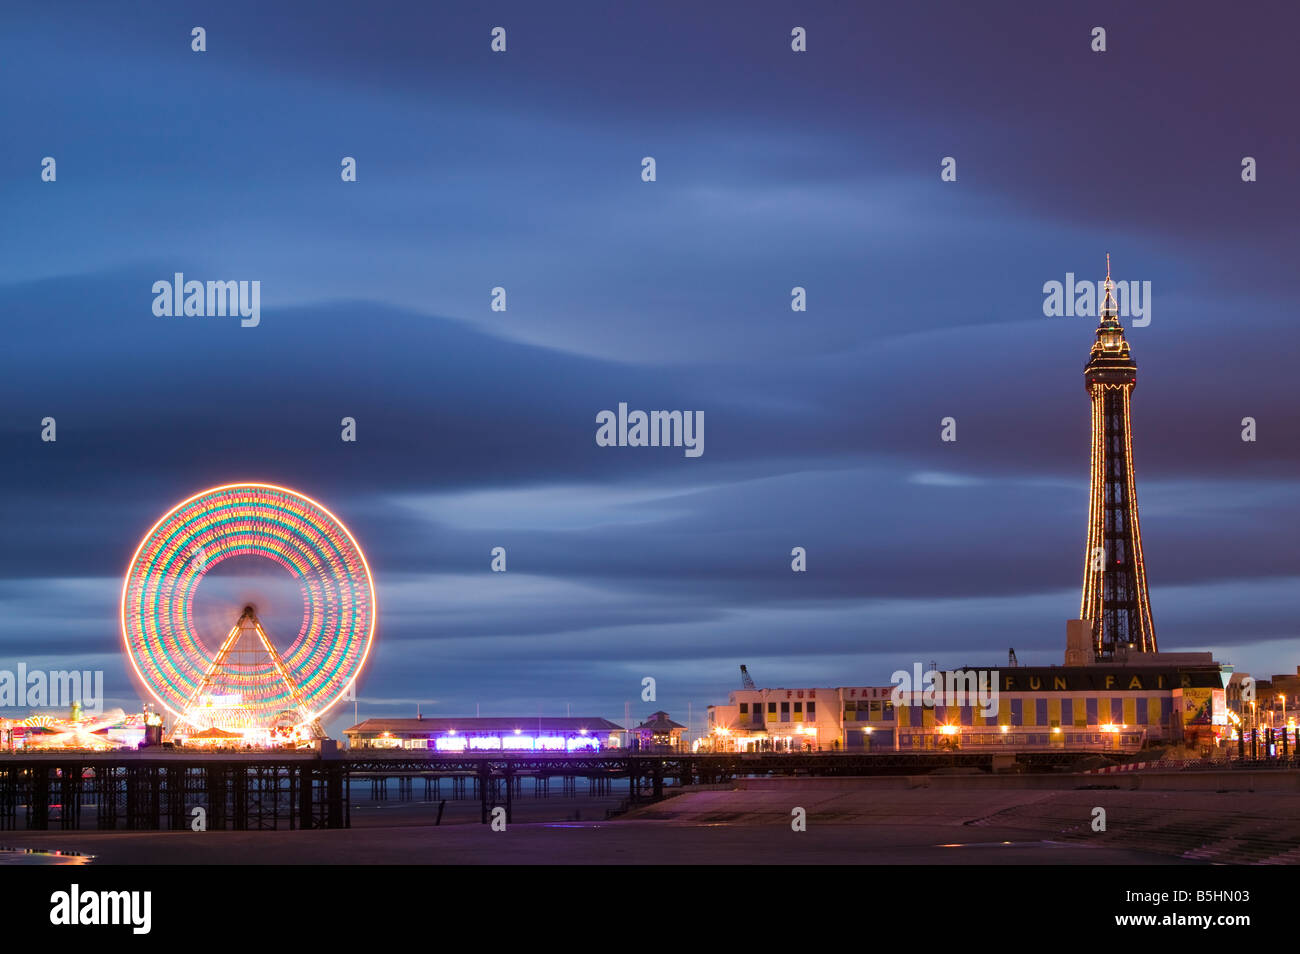 The Ferris Wheel on the Central Pier and the Blackpool Tower, Blackpool, Lancashire, England, UK. - Stock Image